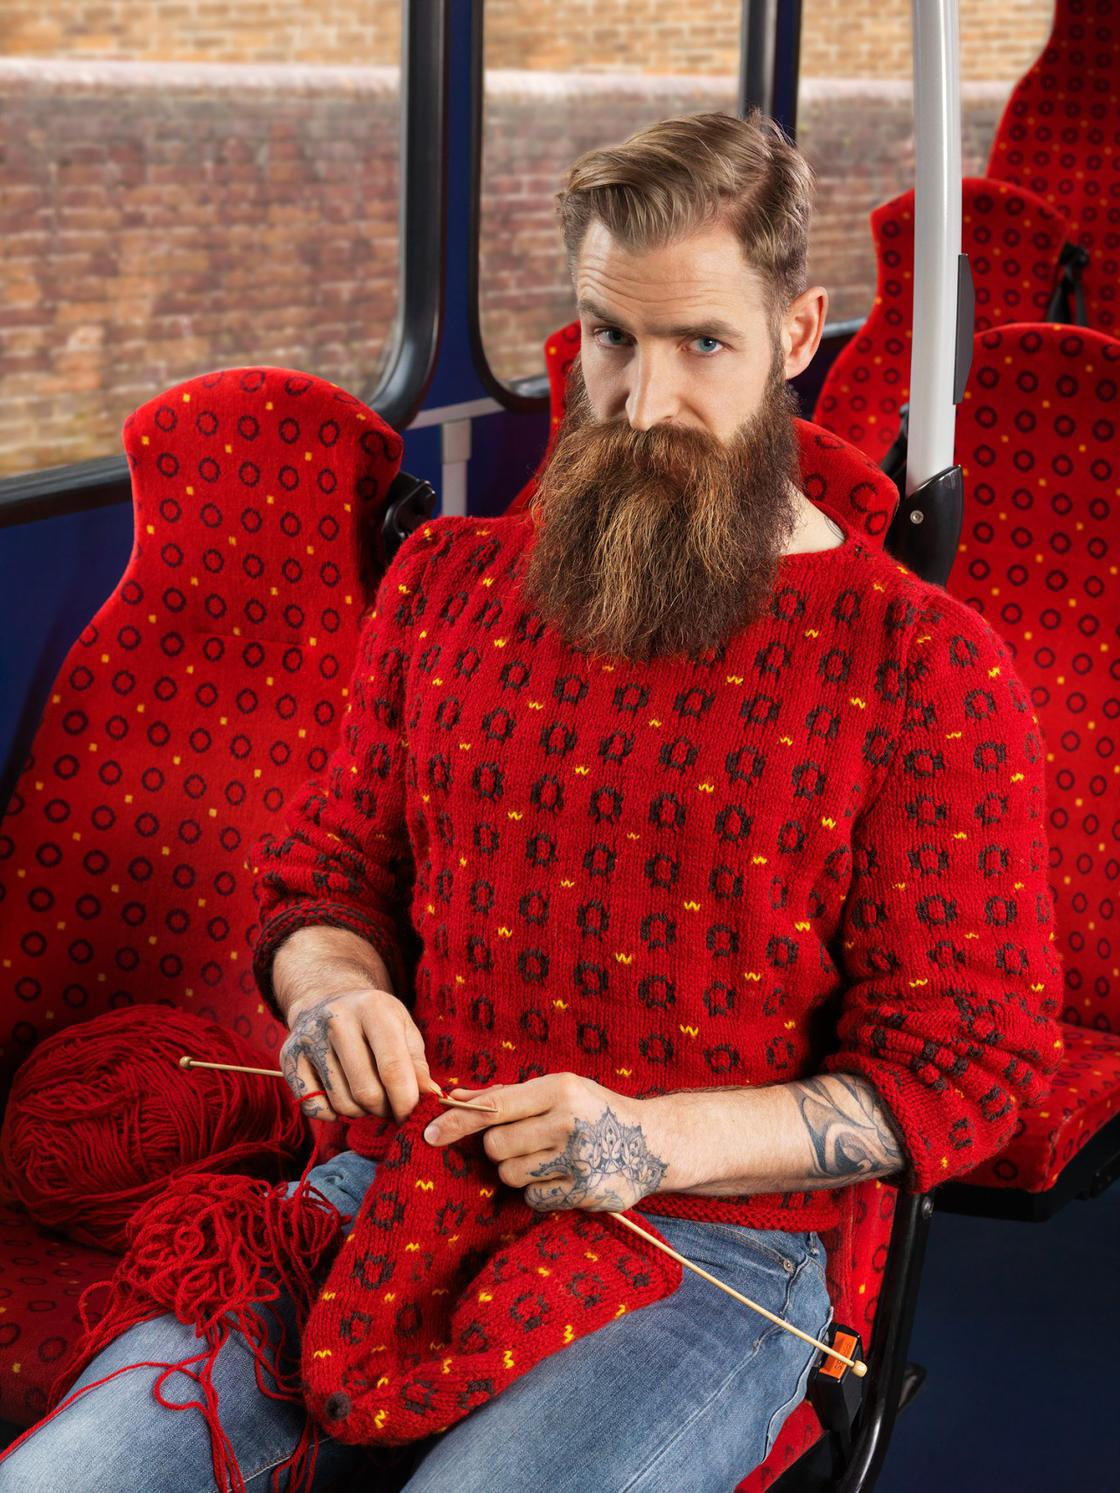 Knitted Camouflage – When knitting meets urban camouflage